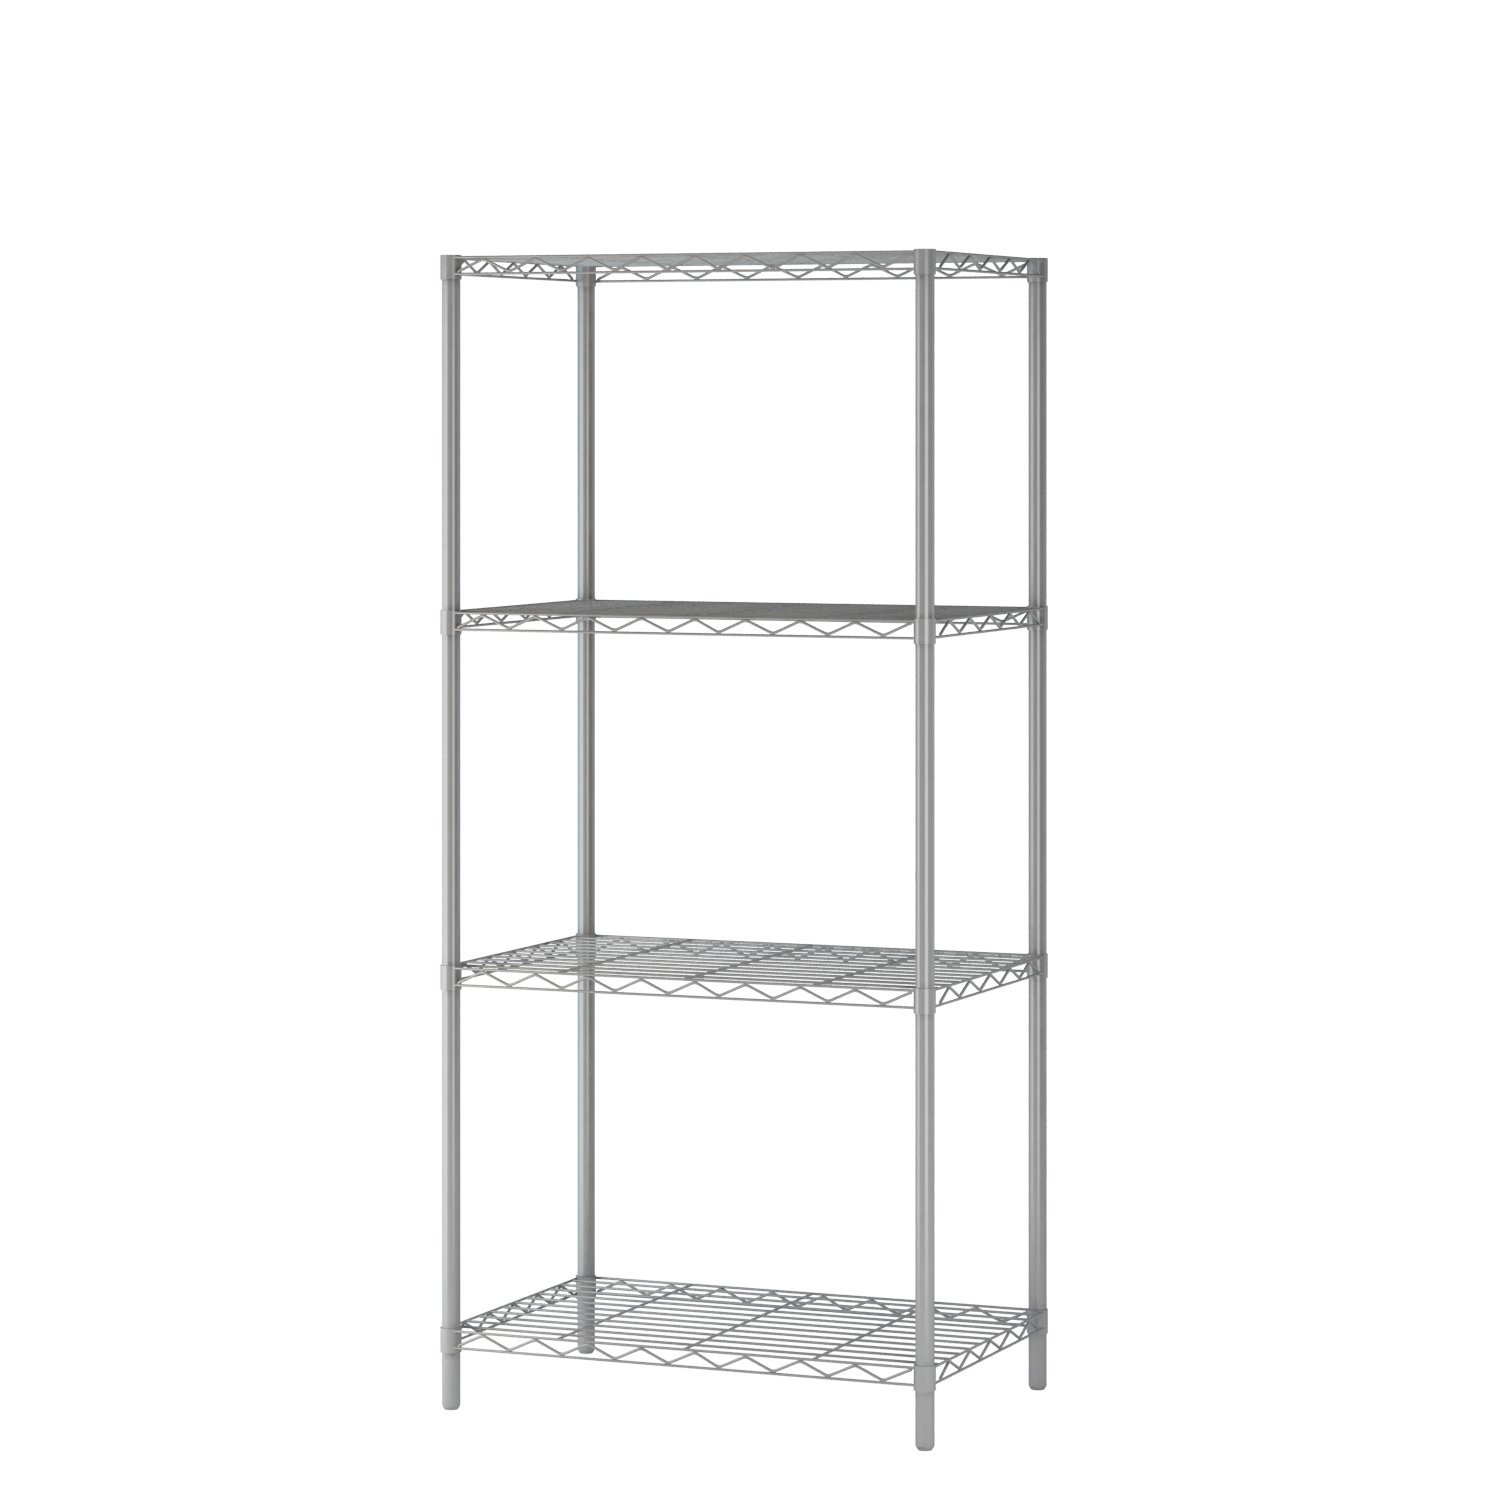 Buy Homebi 4 Tier Wire Shelving 4 Shelves Unit Metal Storage